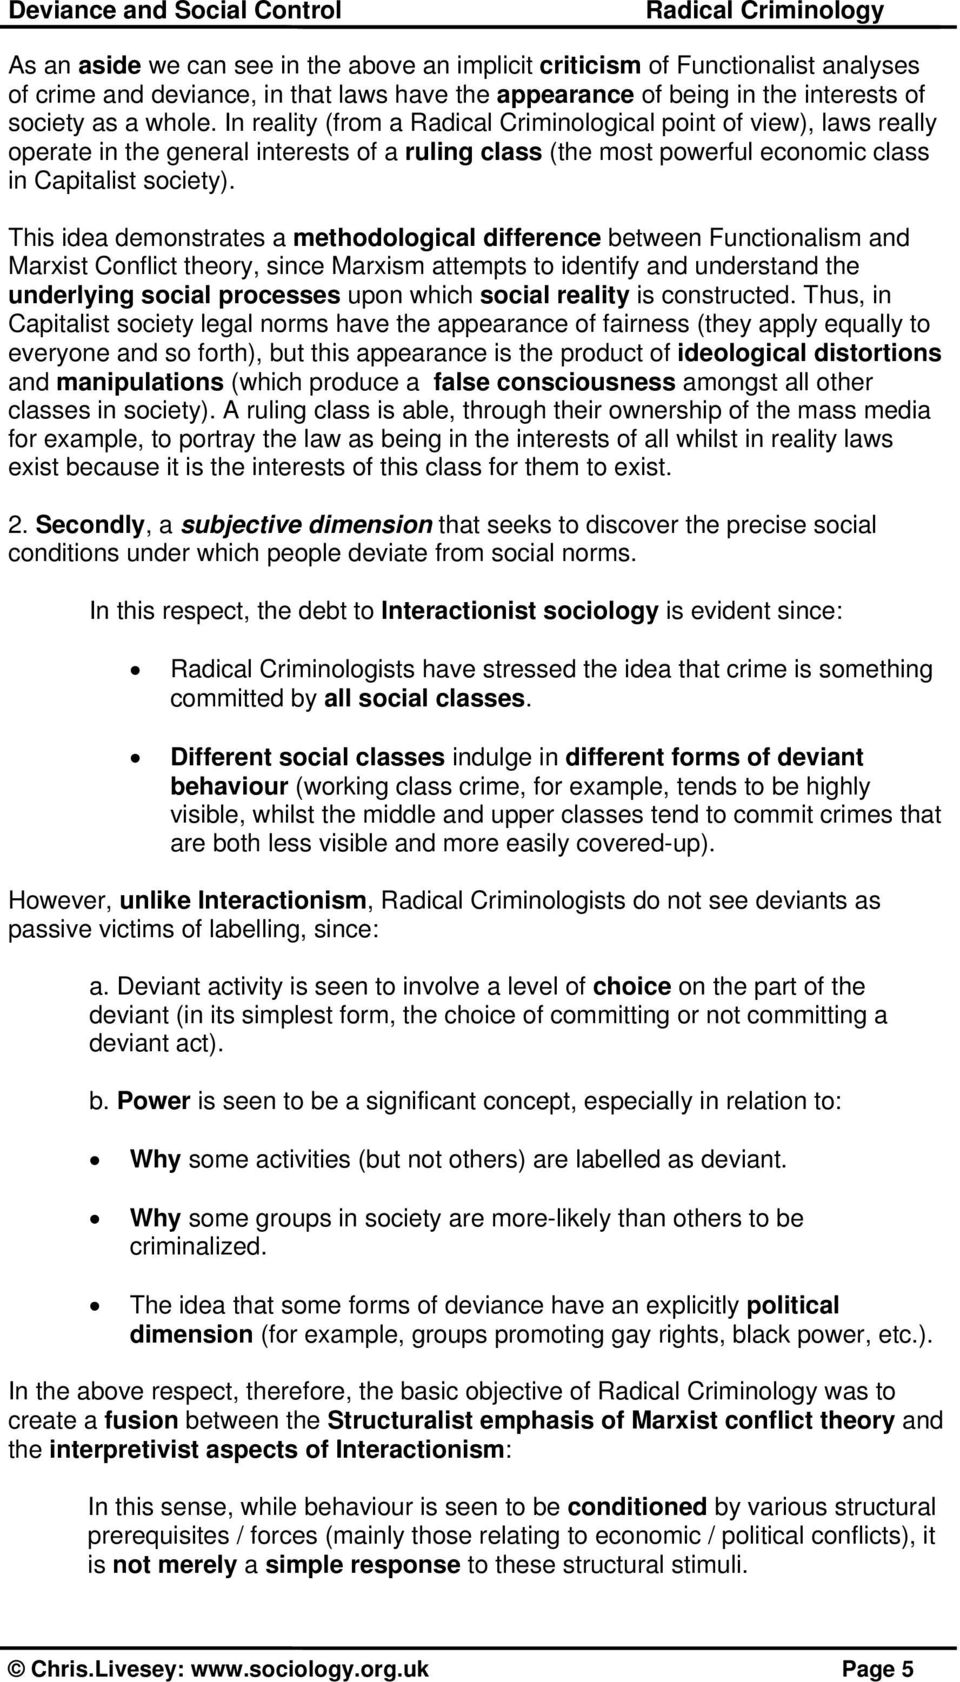 political deviance examples